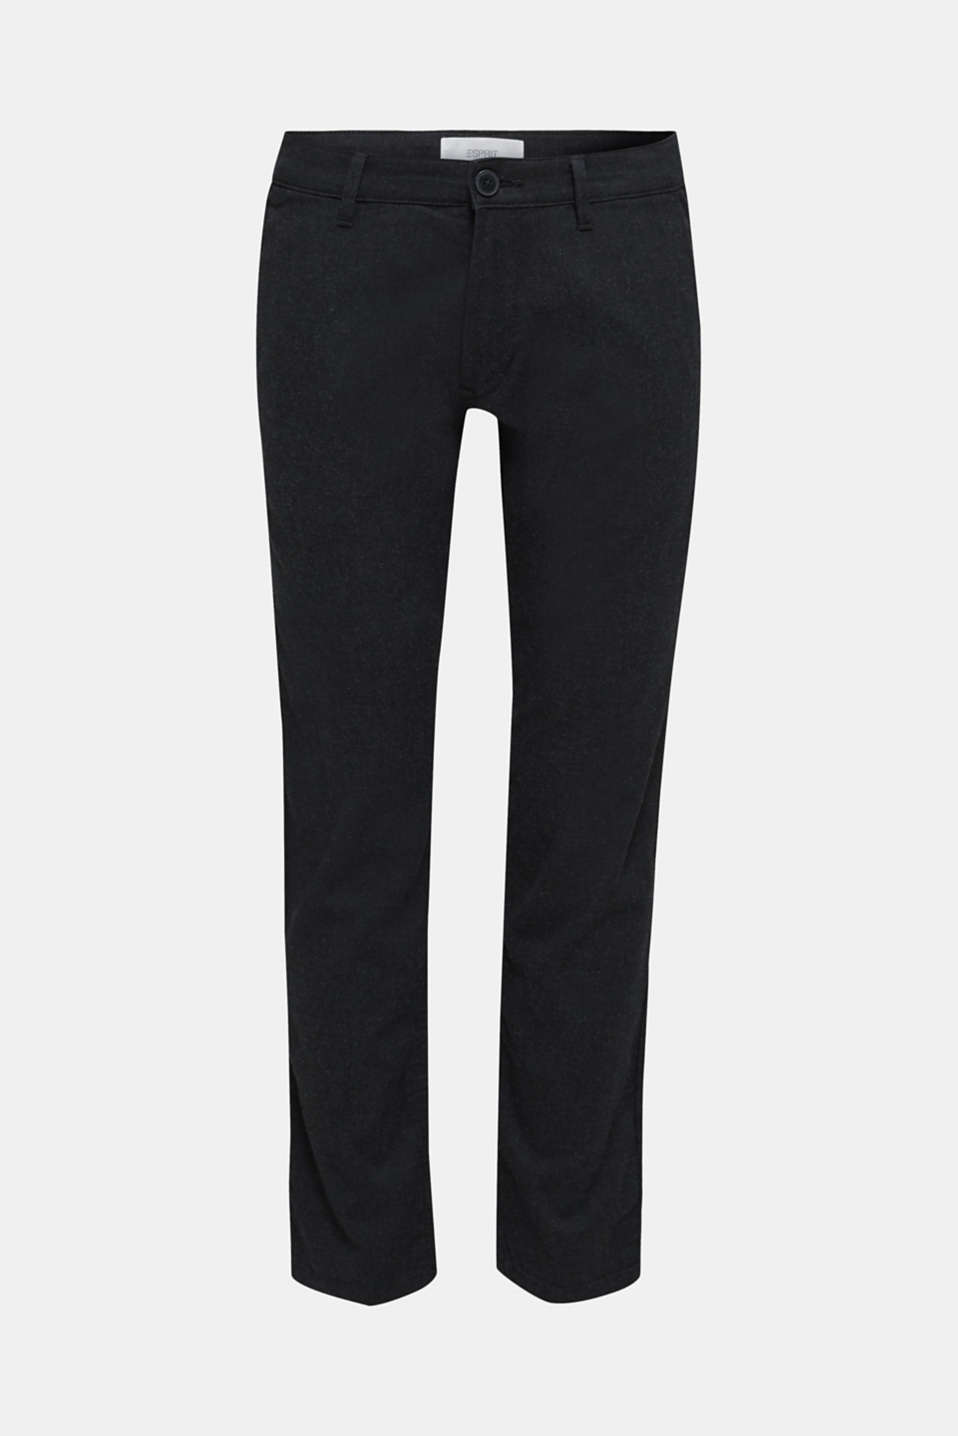 Stretch trousers made of blended cotton, ANTHRACITE, detail image number 6